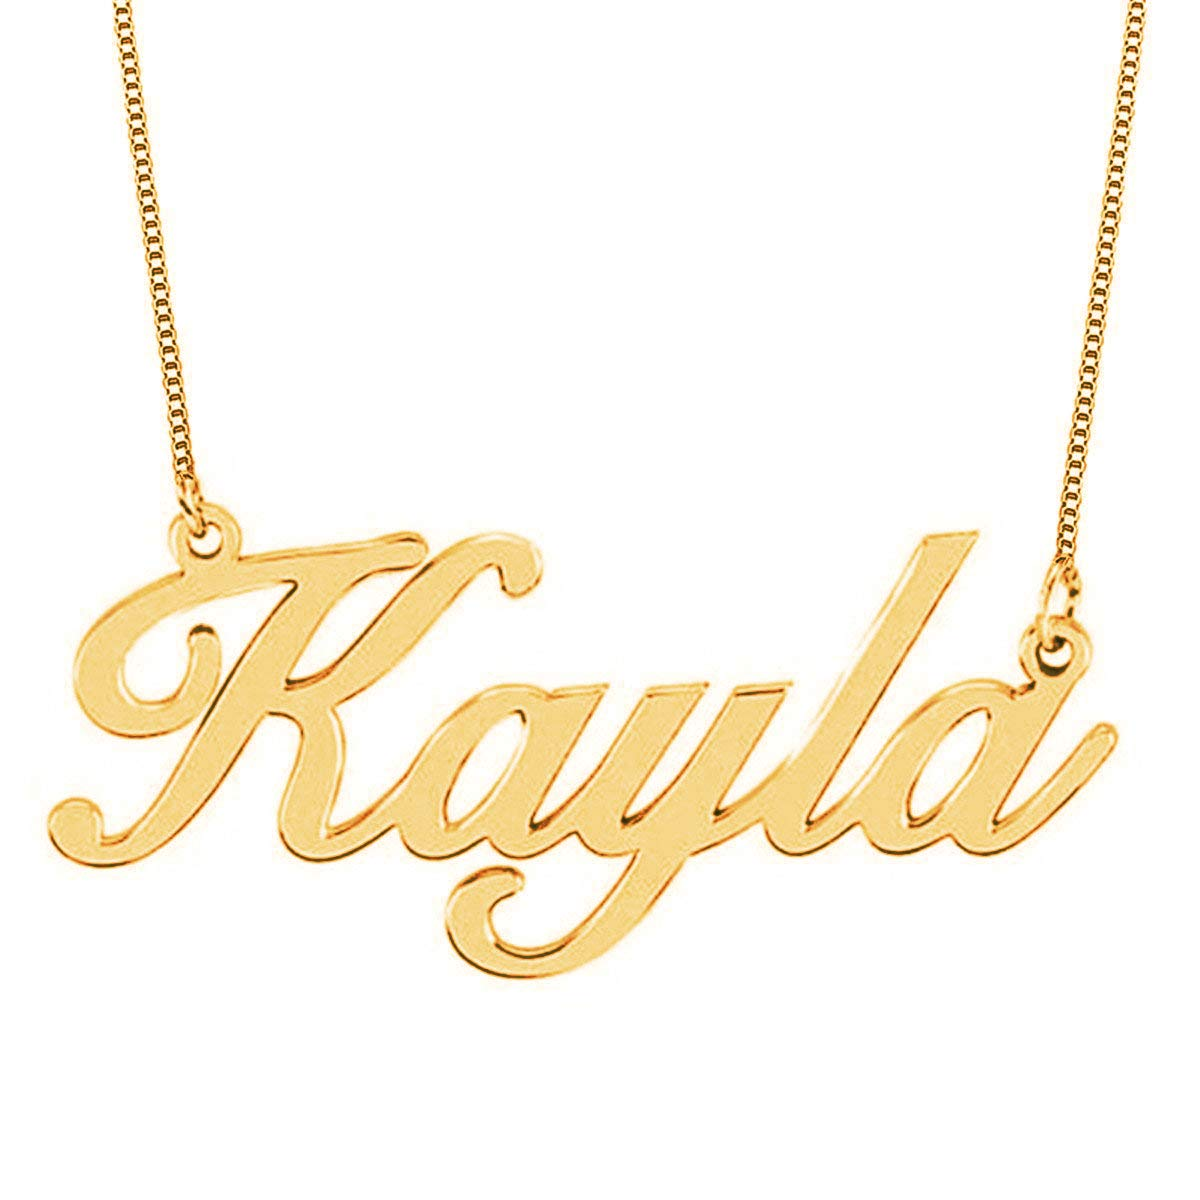 HACOOL 18k Rose Gold Plated Sterling Silver Name Necklace Custom Made with Any Name HACOOL Personalized Necklace 0210-5412-21